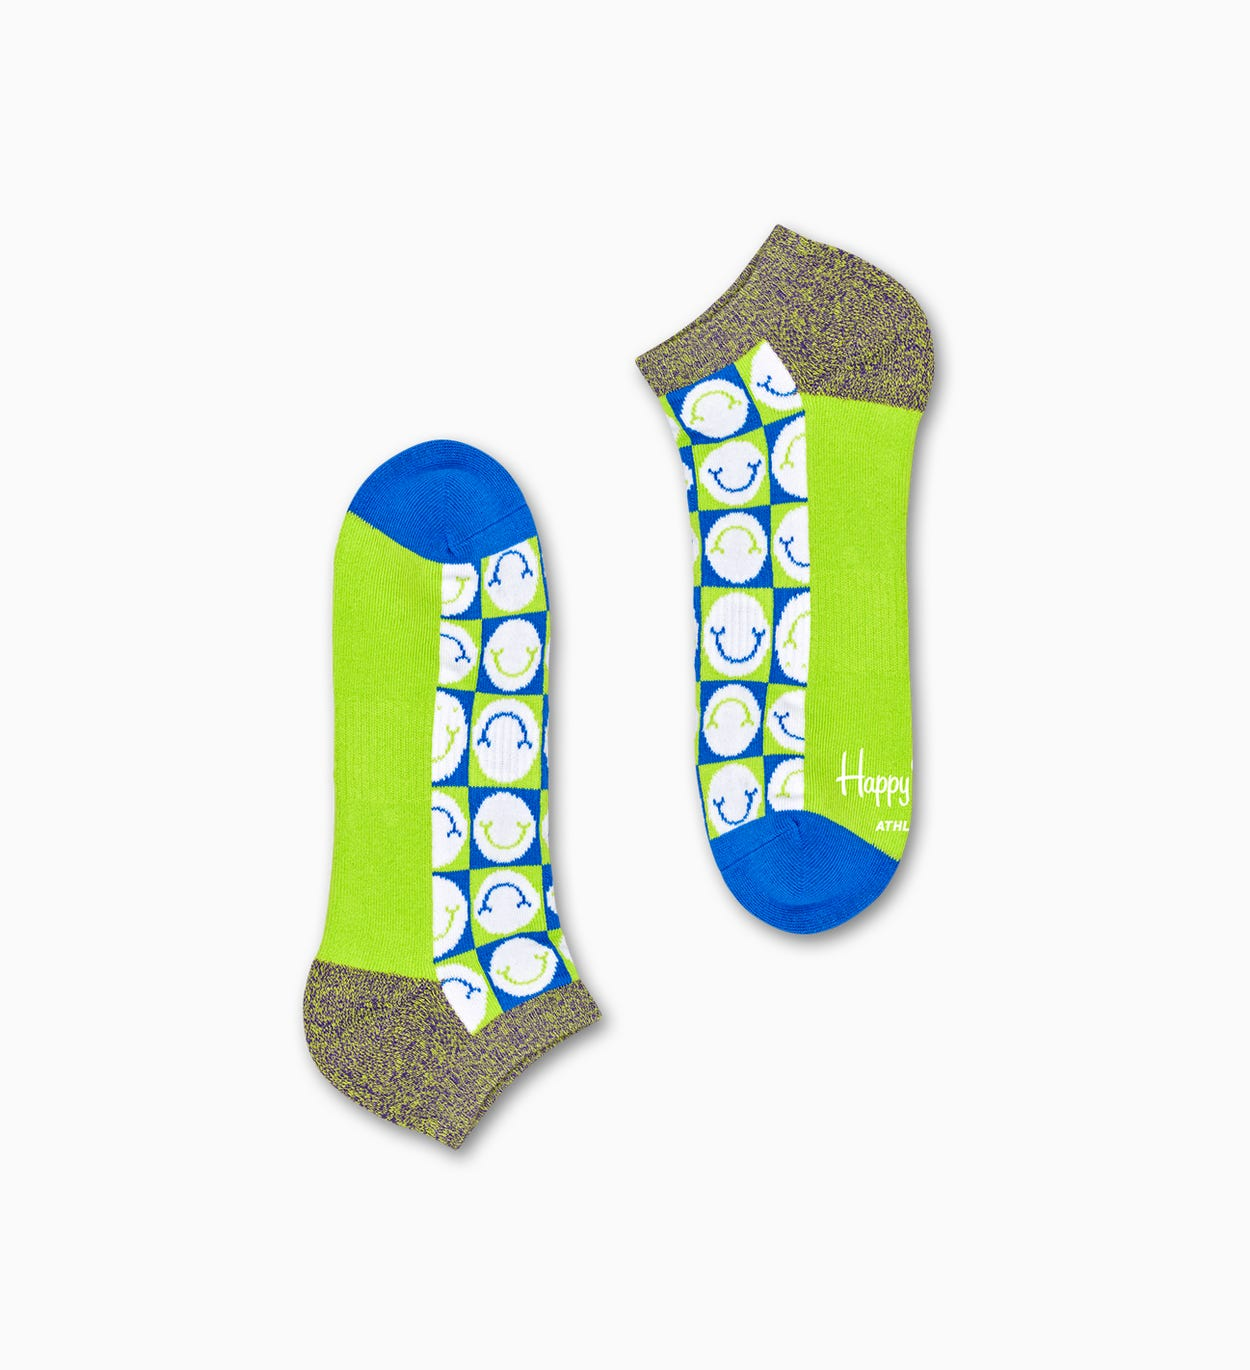 2-Pack Check Low Socks, Green - ATHLETIC | Happy Socks